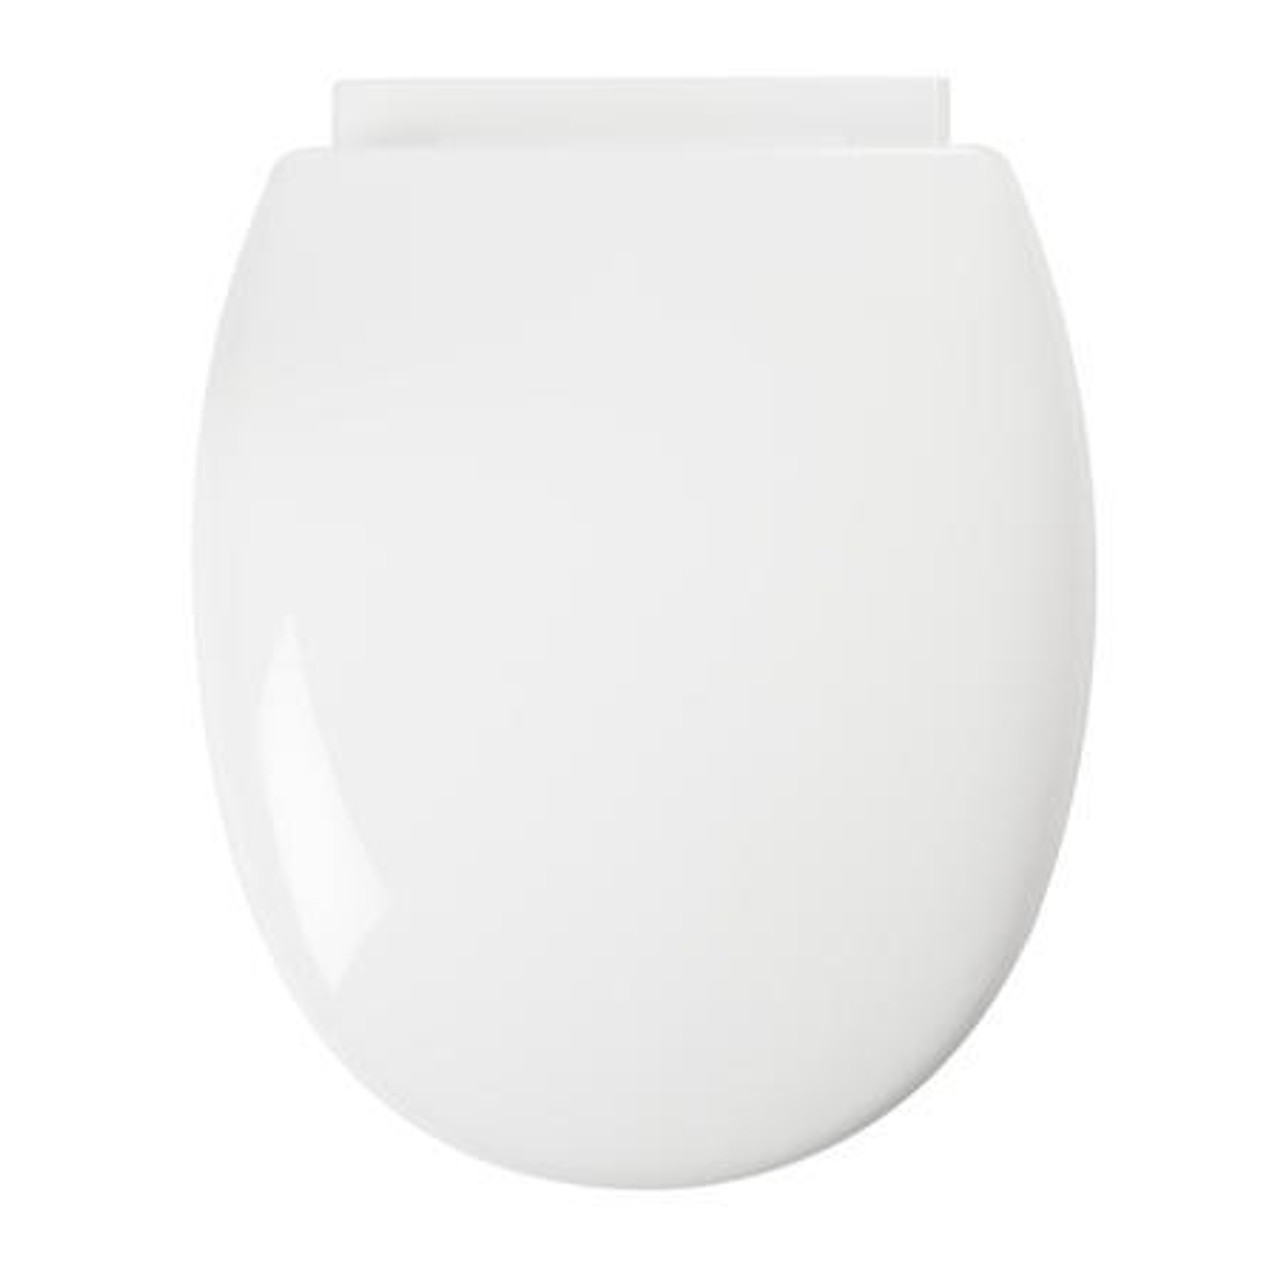 Croydex Anit-Bacterial Toilet Seat with Soft Close